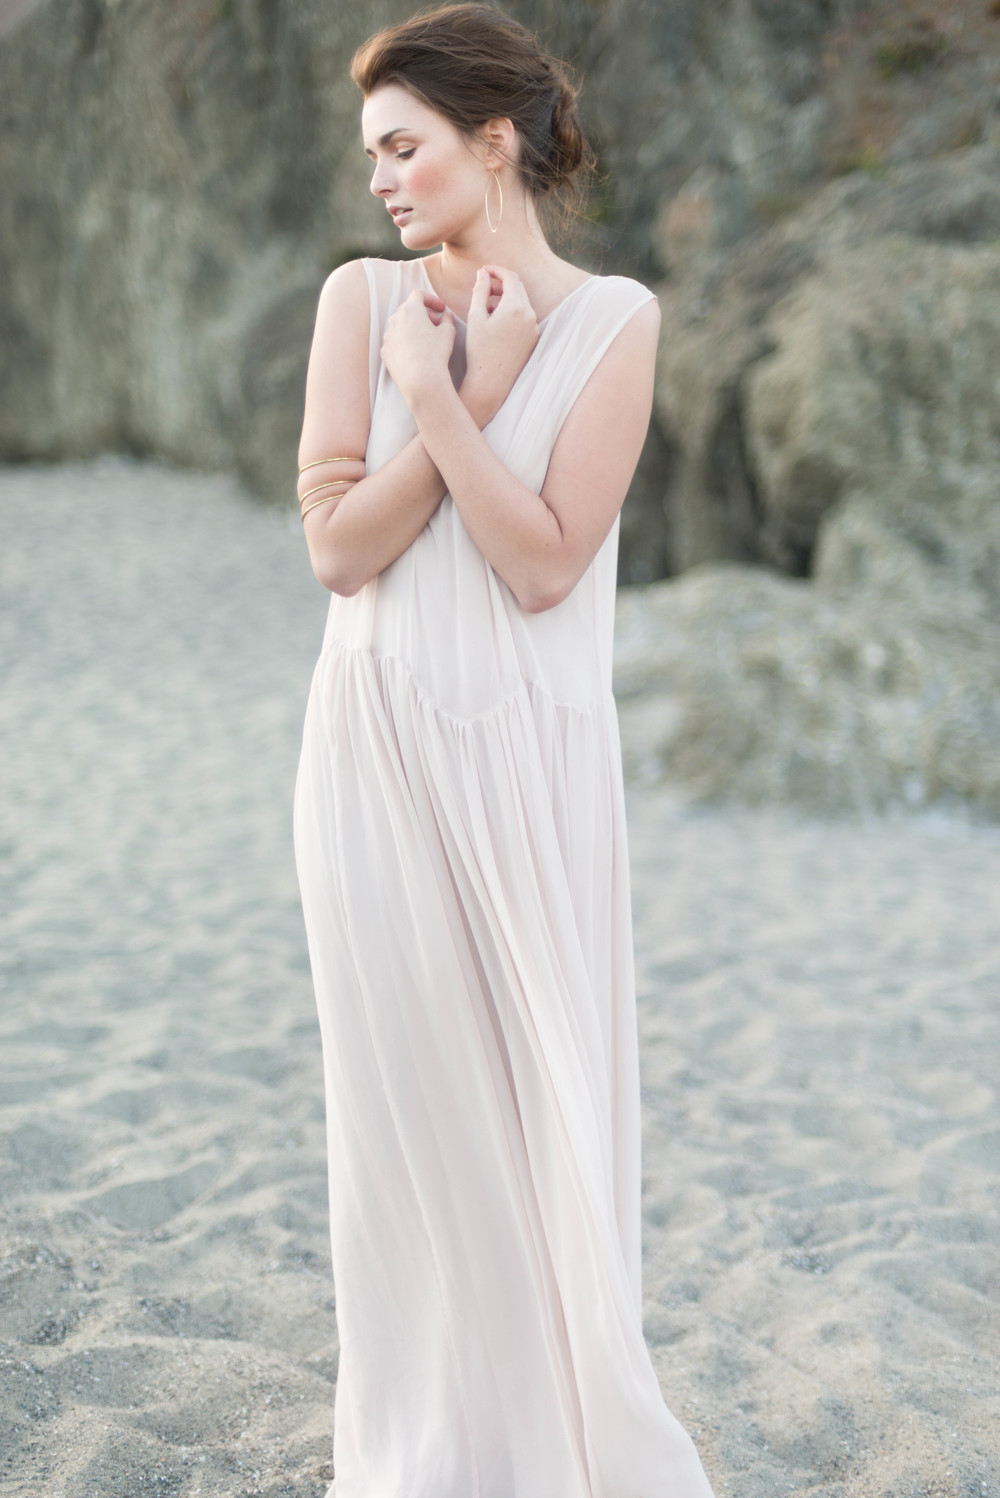 Meghan Mehan Fine Art Photography - Elk, California - Beach Bridal_Chloe - 006-2.jpg